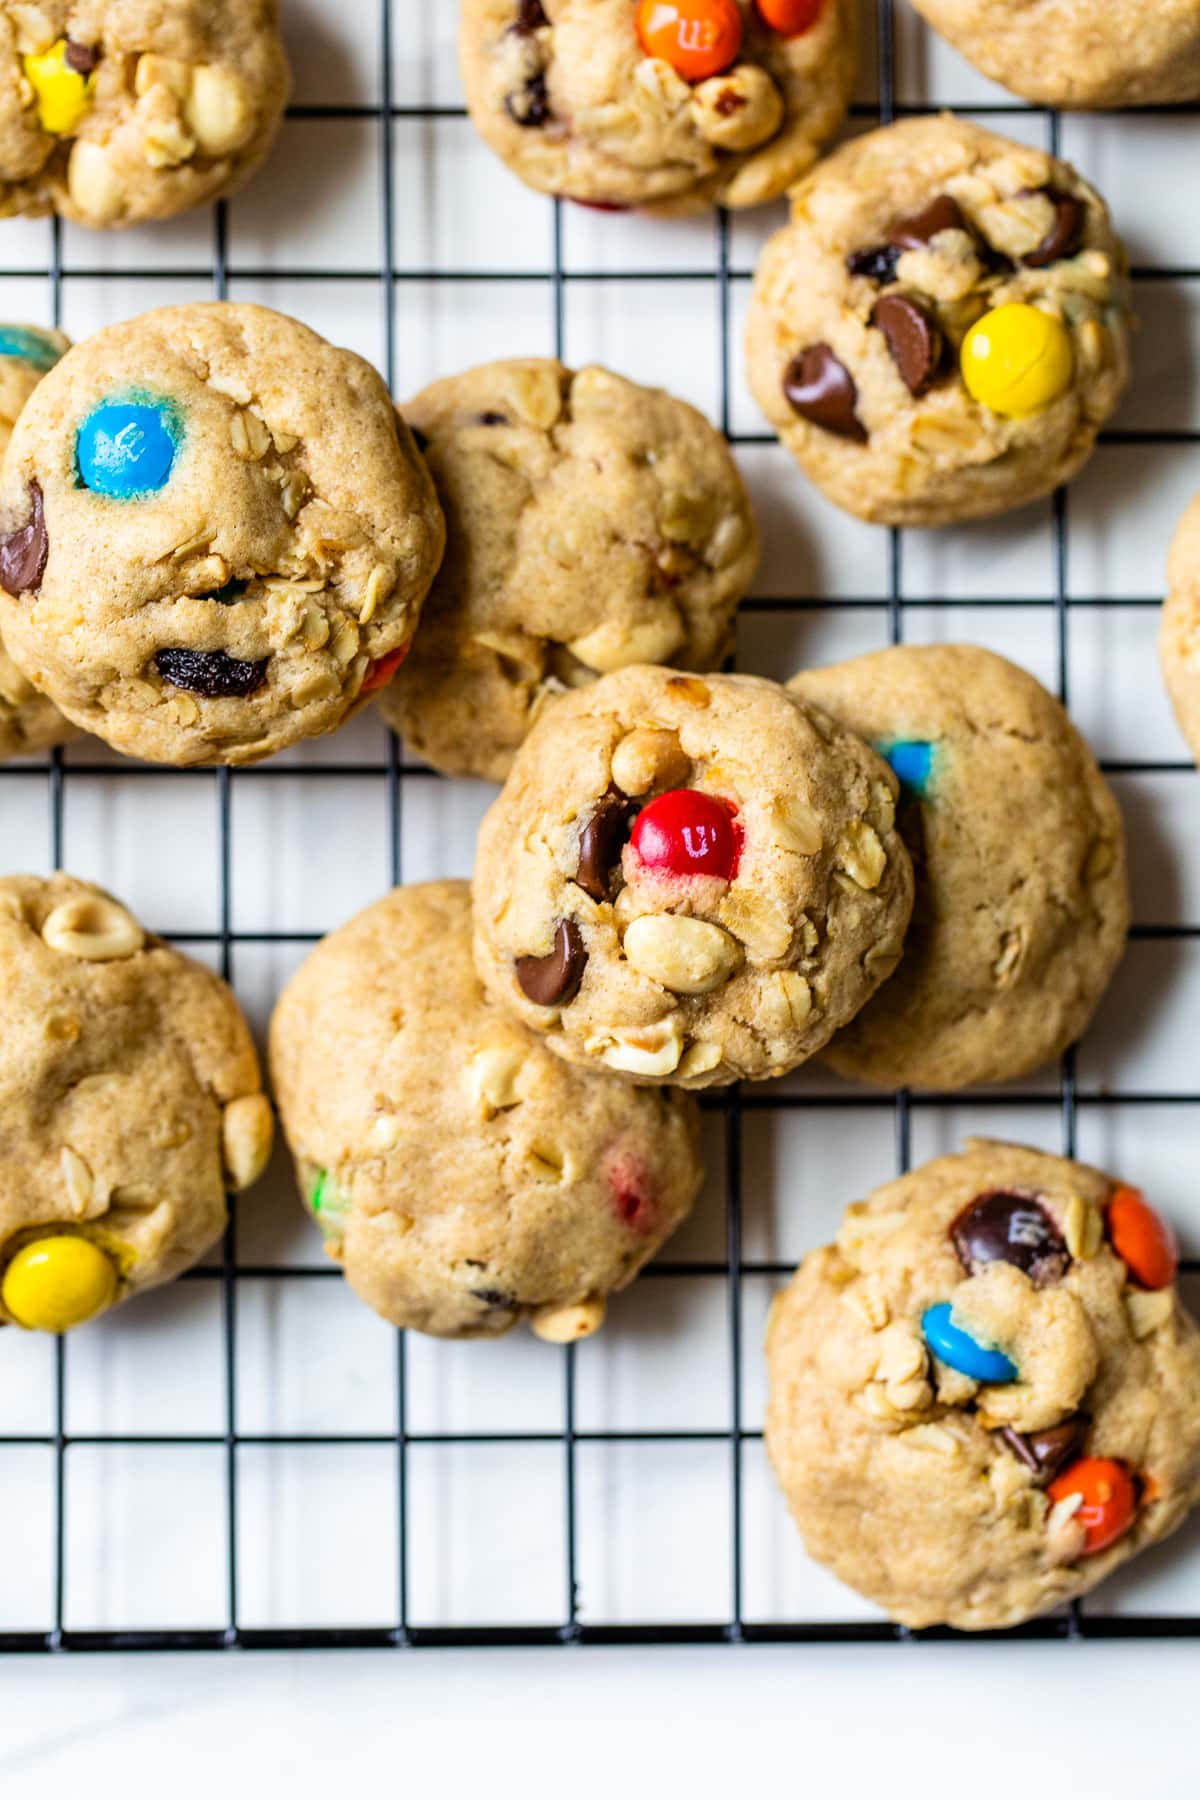 A stack of trail mix cookies with peanuts and chocolate